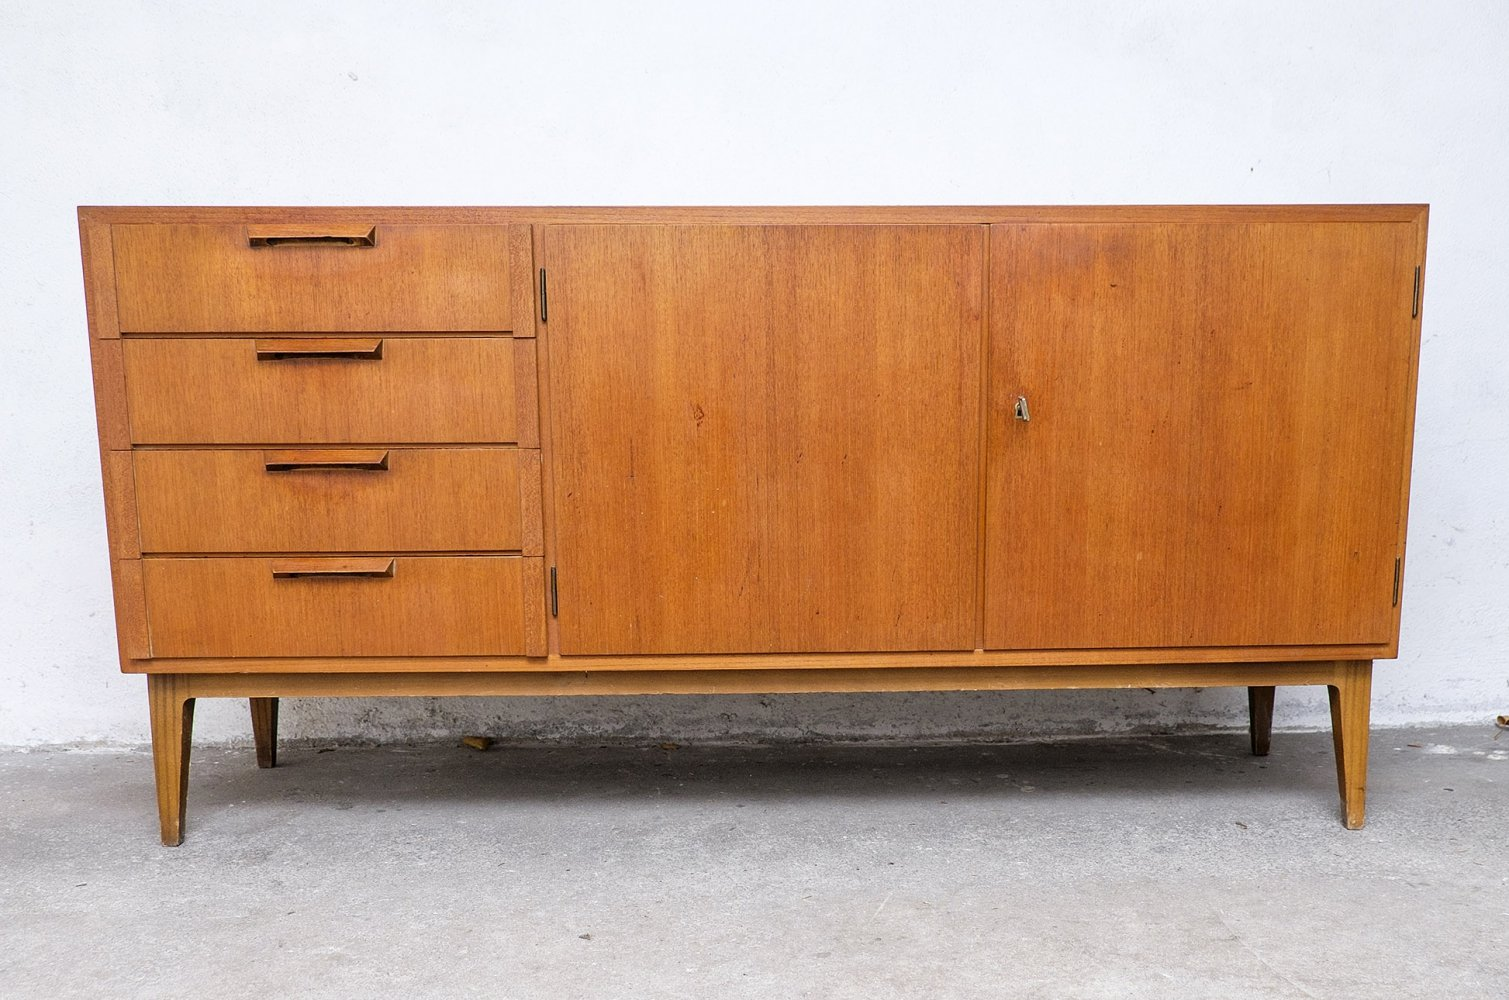 Teak Sideboard from the 1960s